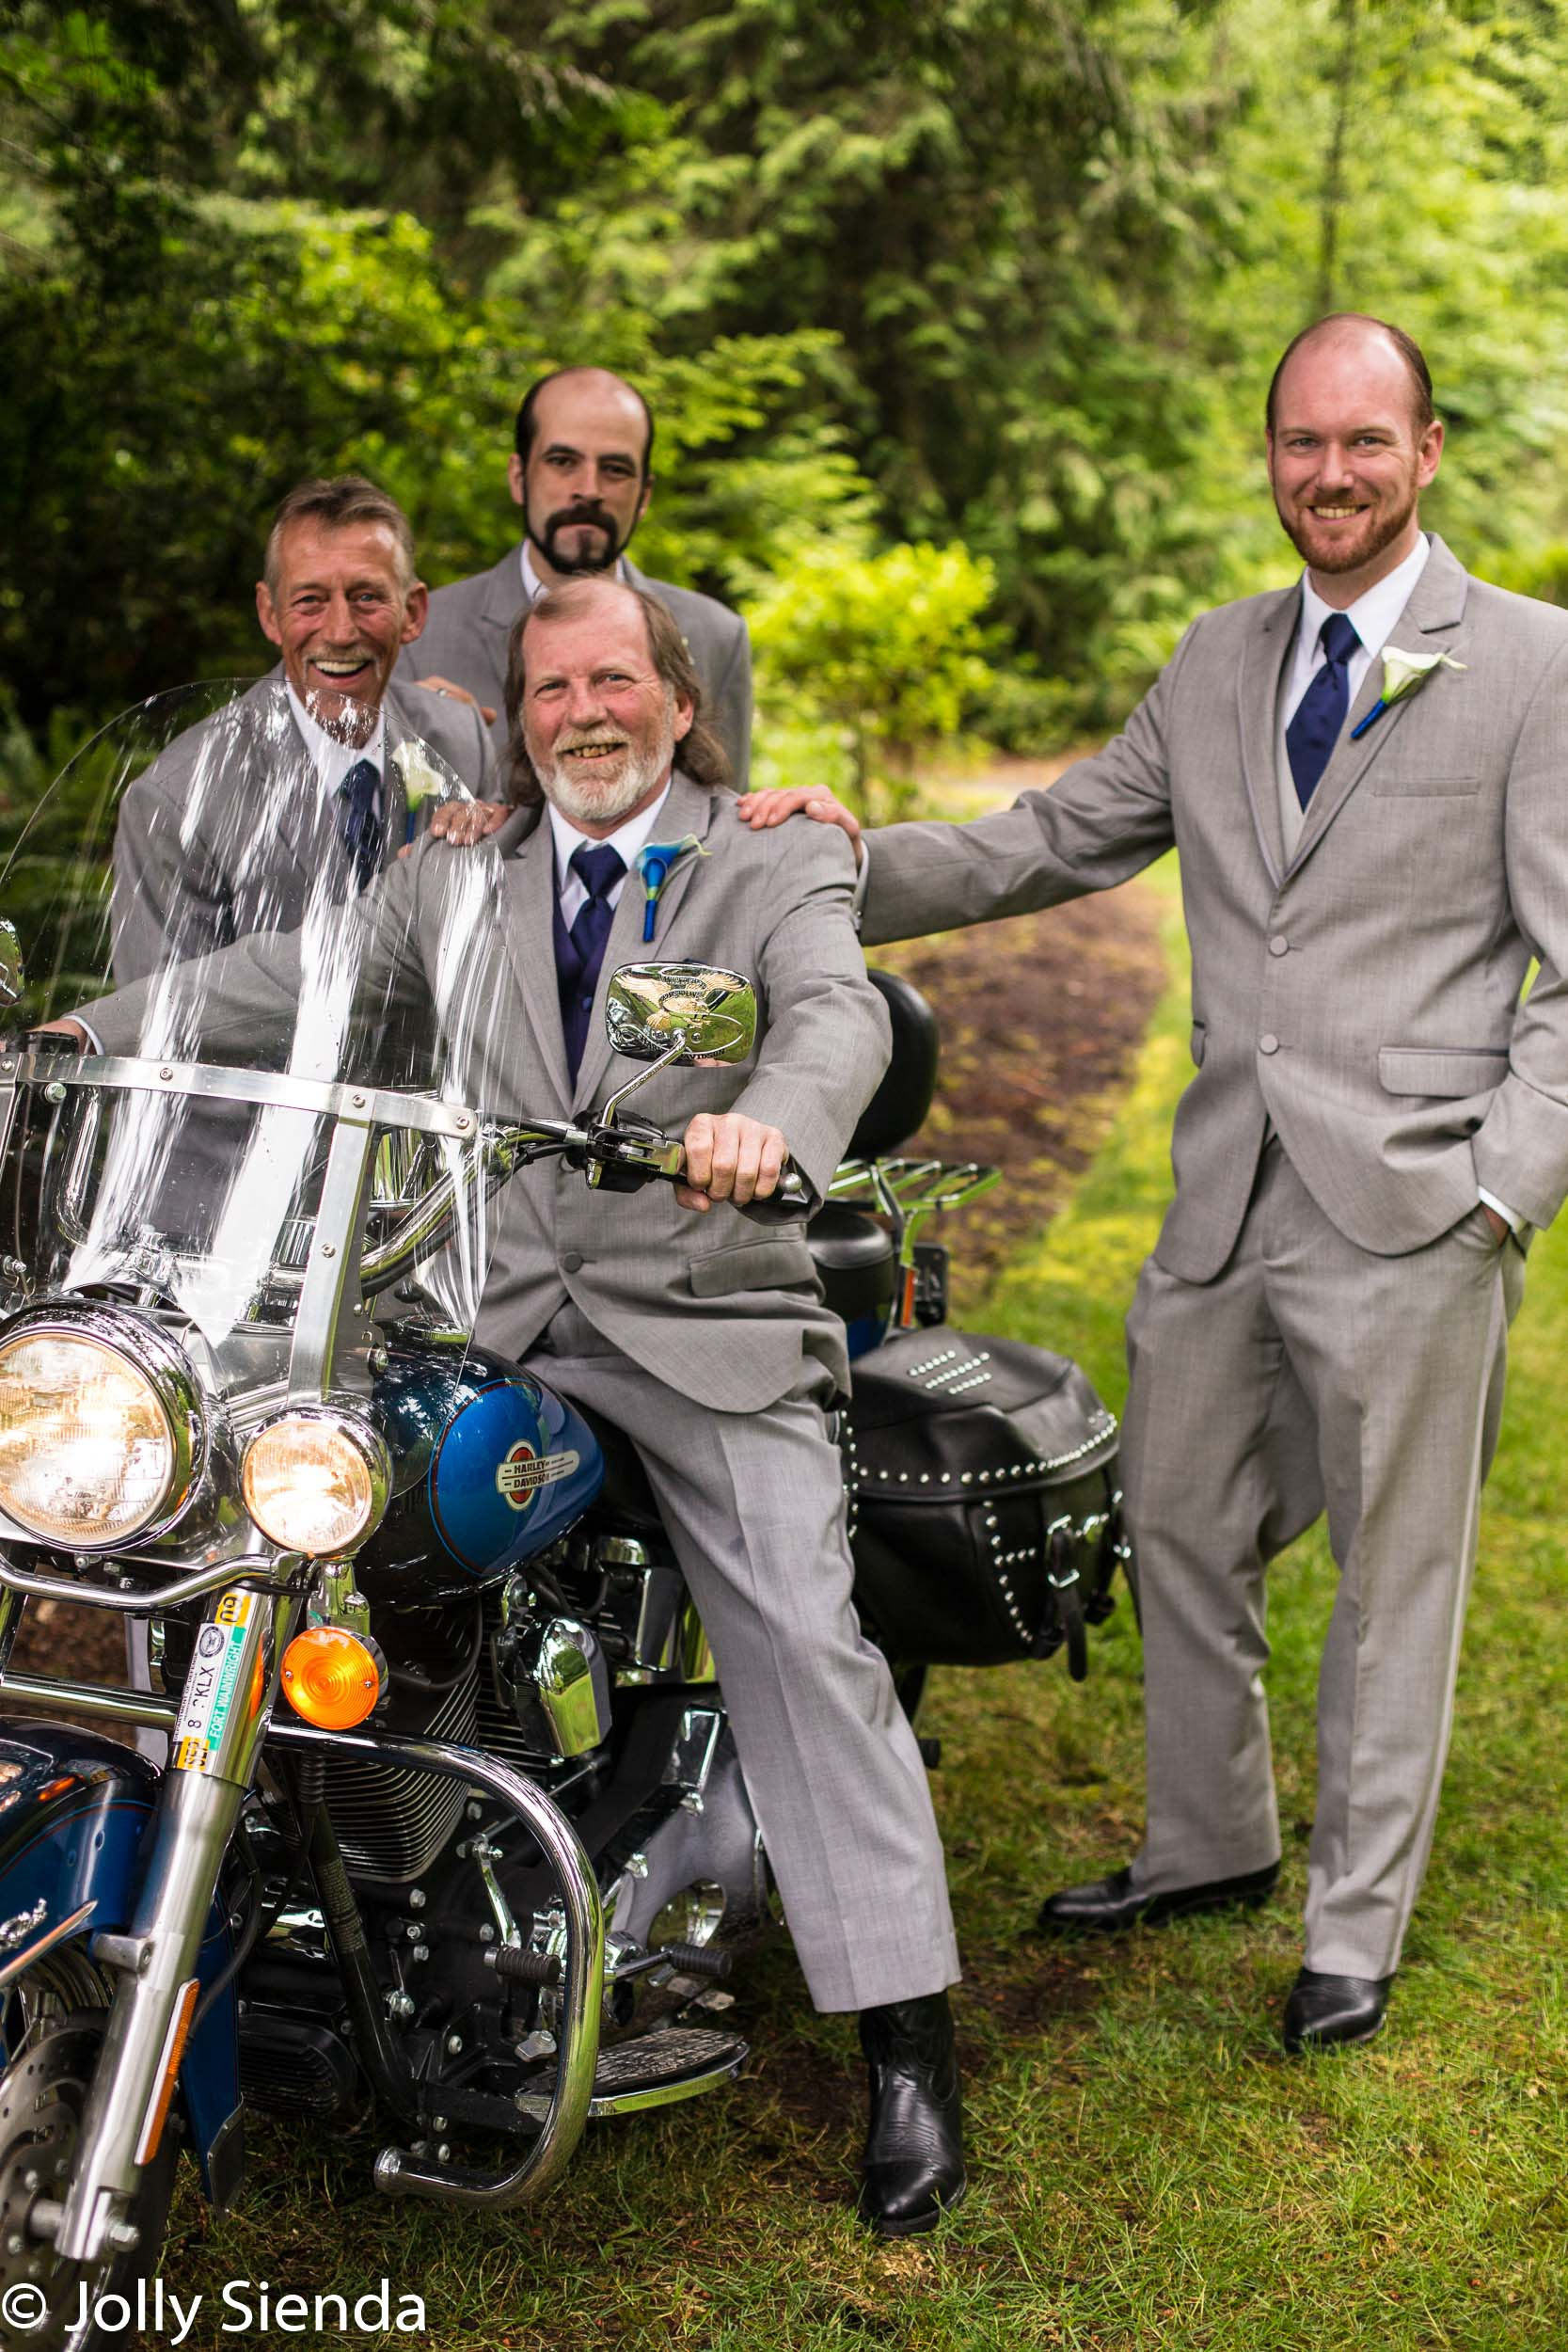 Groom and groomsmen at a wedding with their motorcycle